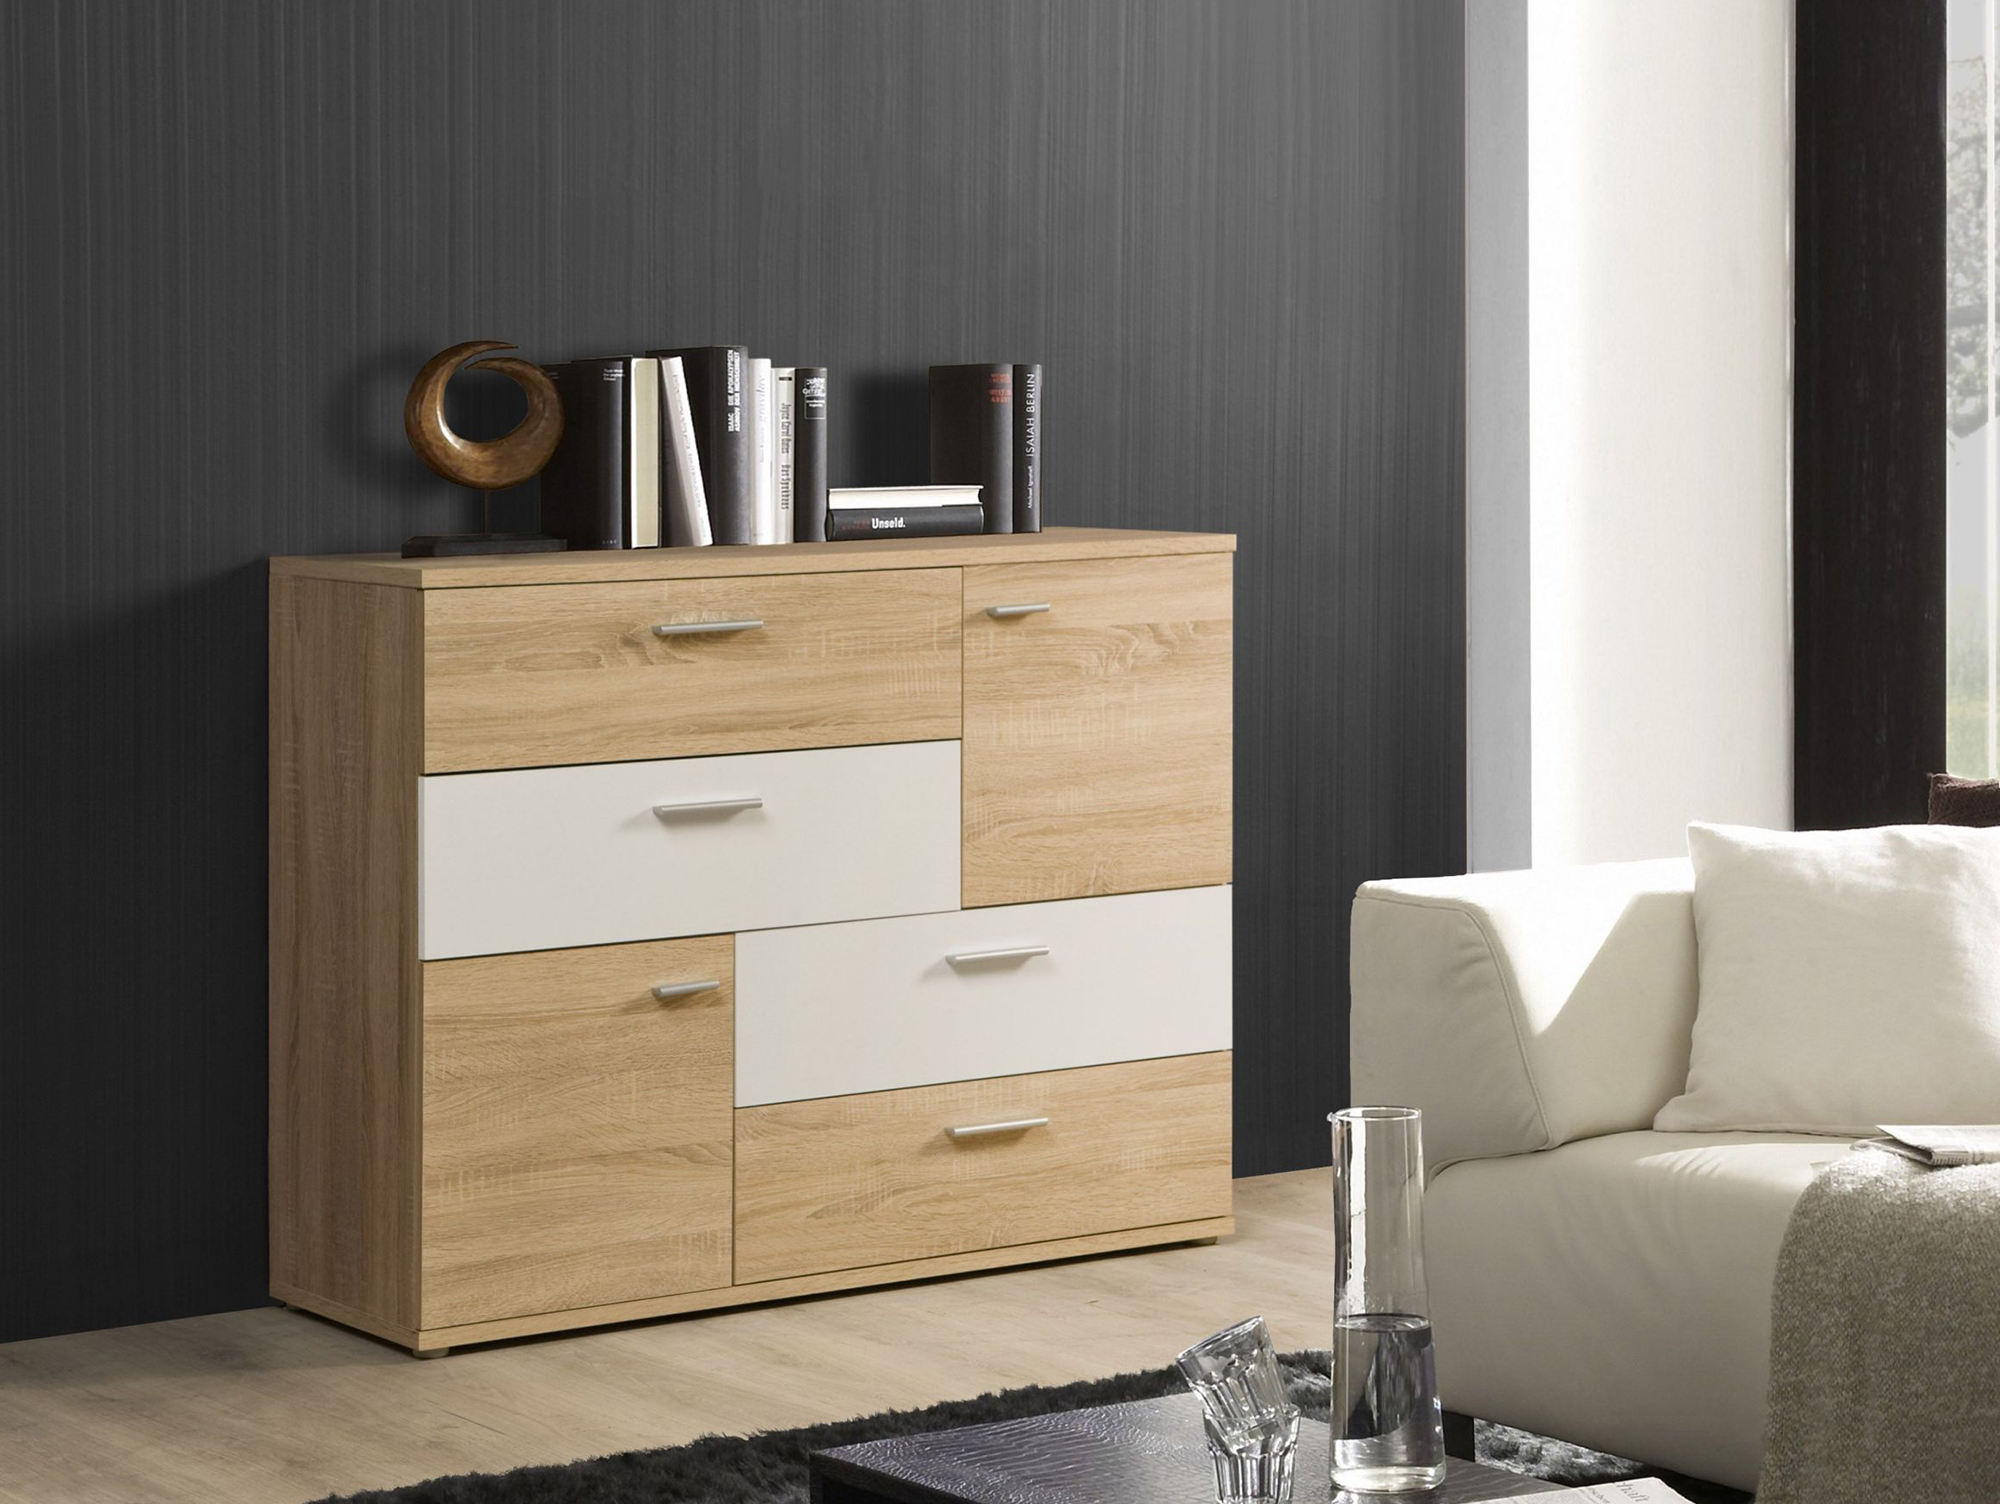 skiv kommode mit 2 t ren und 4 schubk sten eiche sonoma weiss. Black Bedroom Furniture Sets. Home Design Ideas